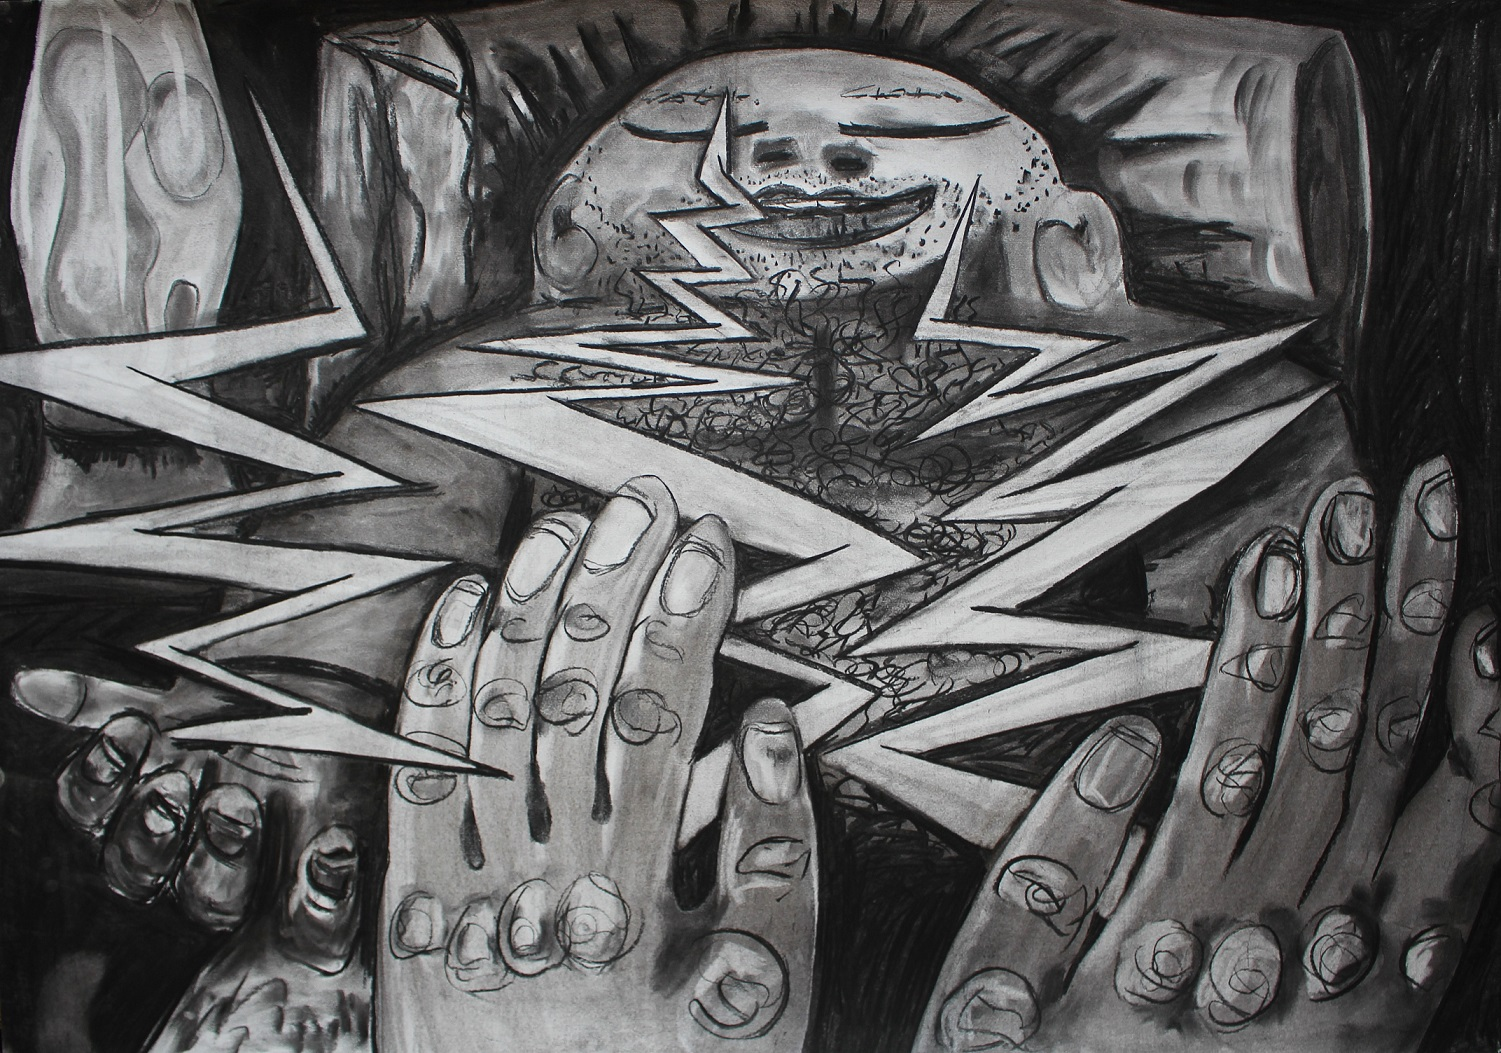 Passing electricity. Charcoal on paper. 100x70cm. 2016